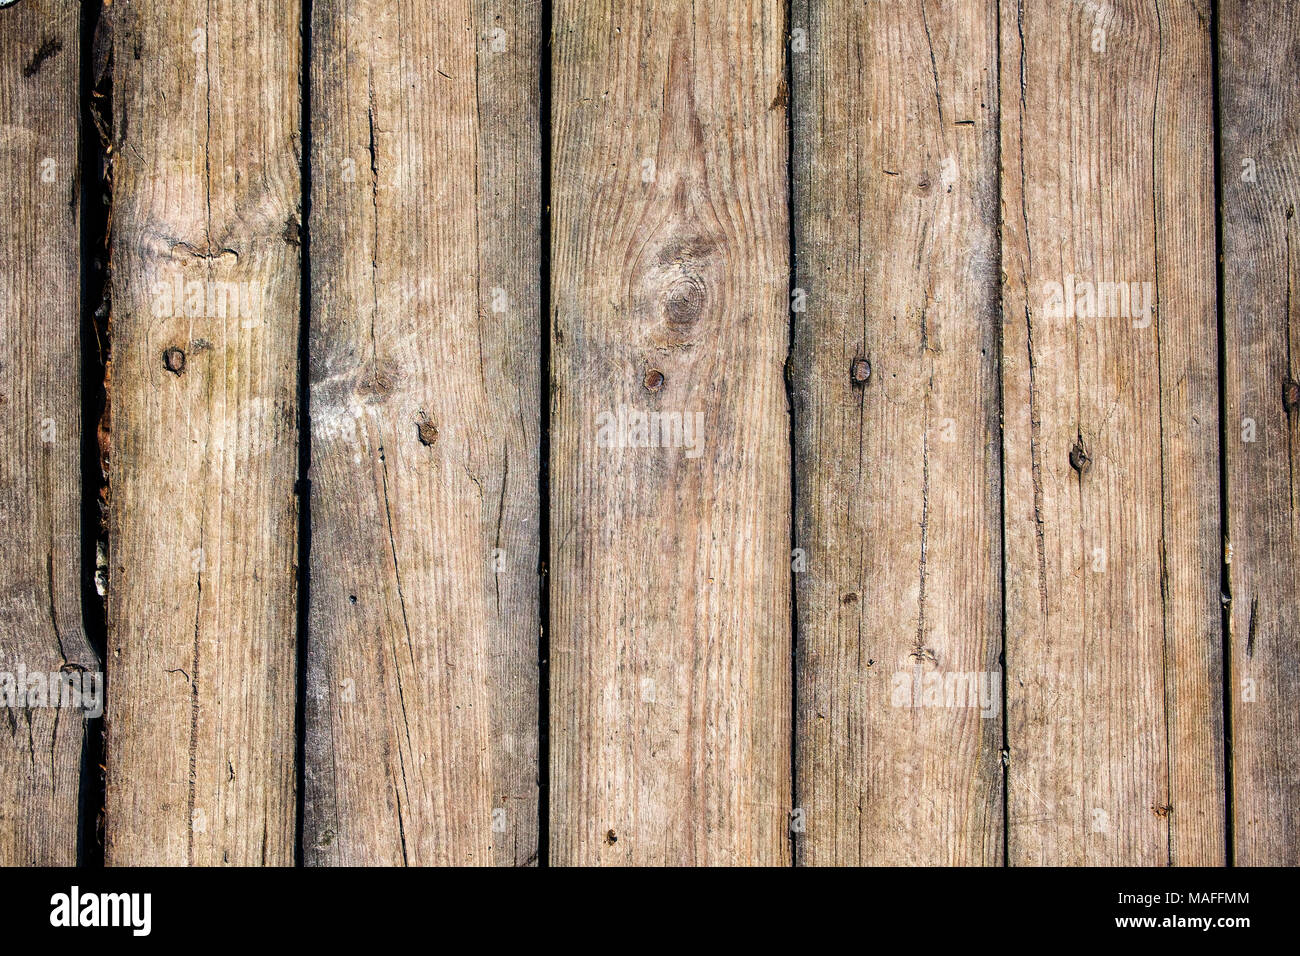 The surface of aged boards. Texture of boards with cracks and nail heads - Stock Image